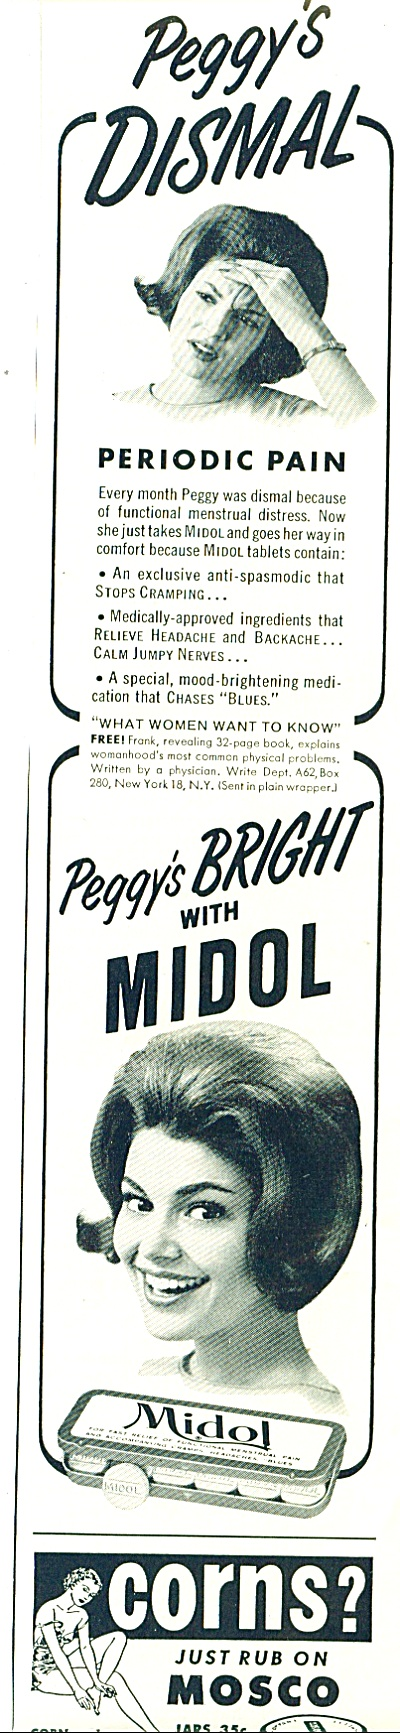 Midol pain medication ad 1962 (Image1)